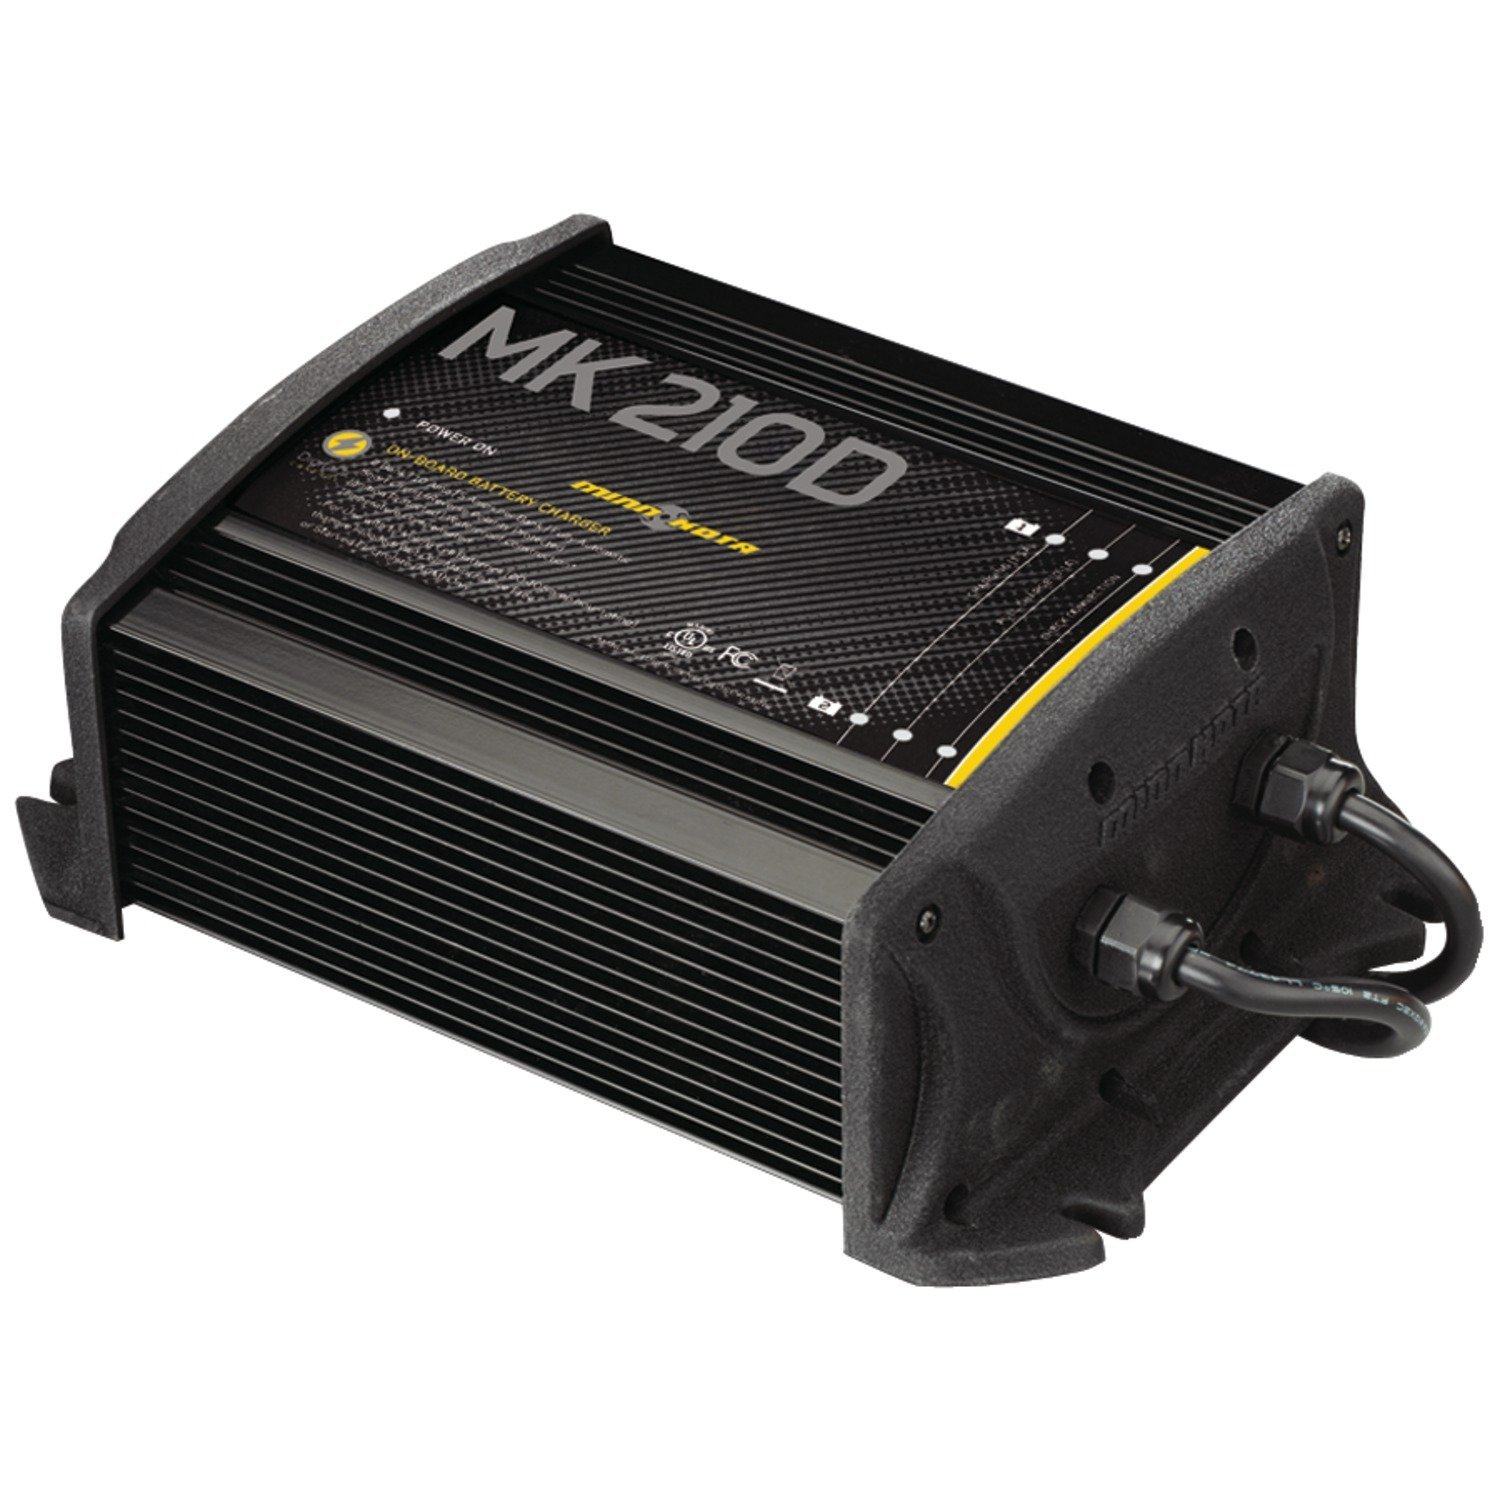 Minn Kota MK 210D On_Board Battery Charger (2 Banks, 5 amps per bank)